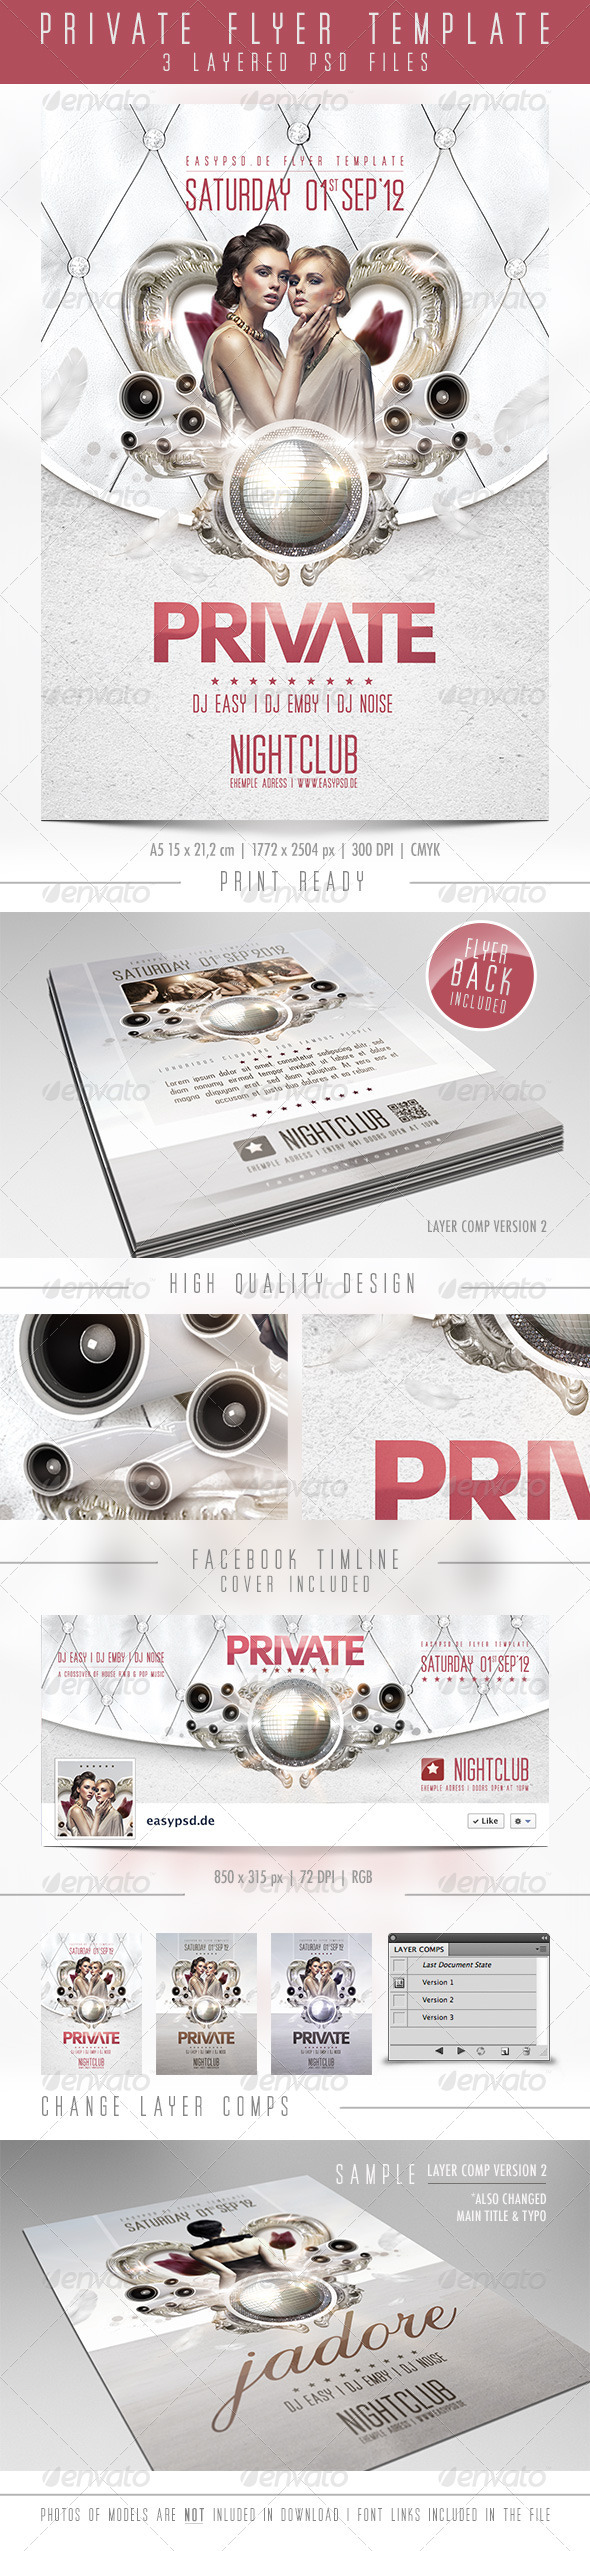 Private Flyer Template - Clubs & Parties Events